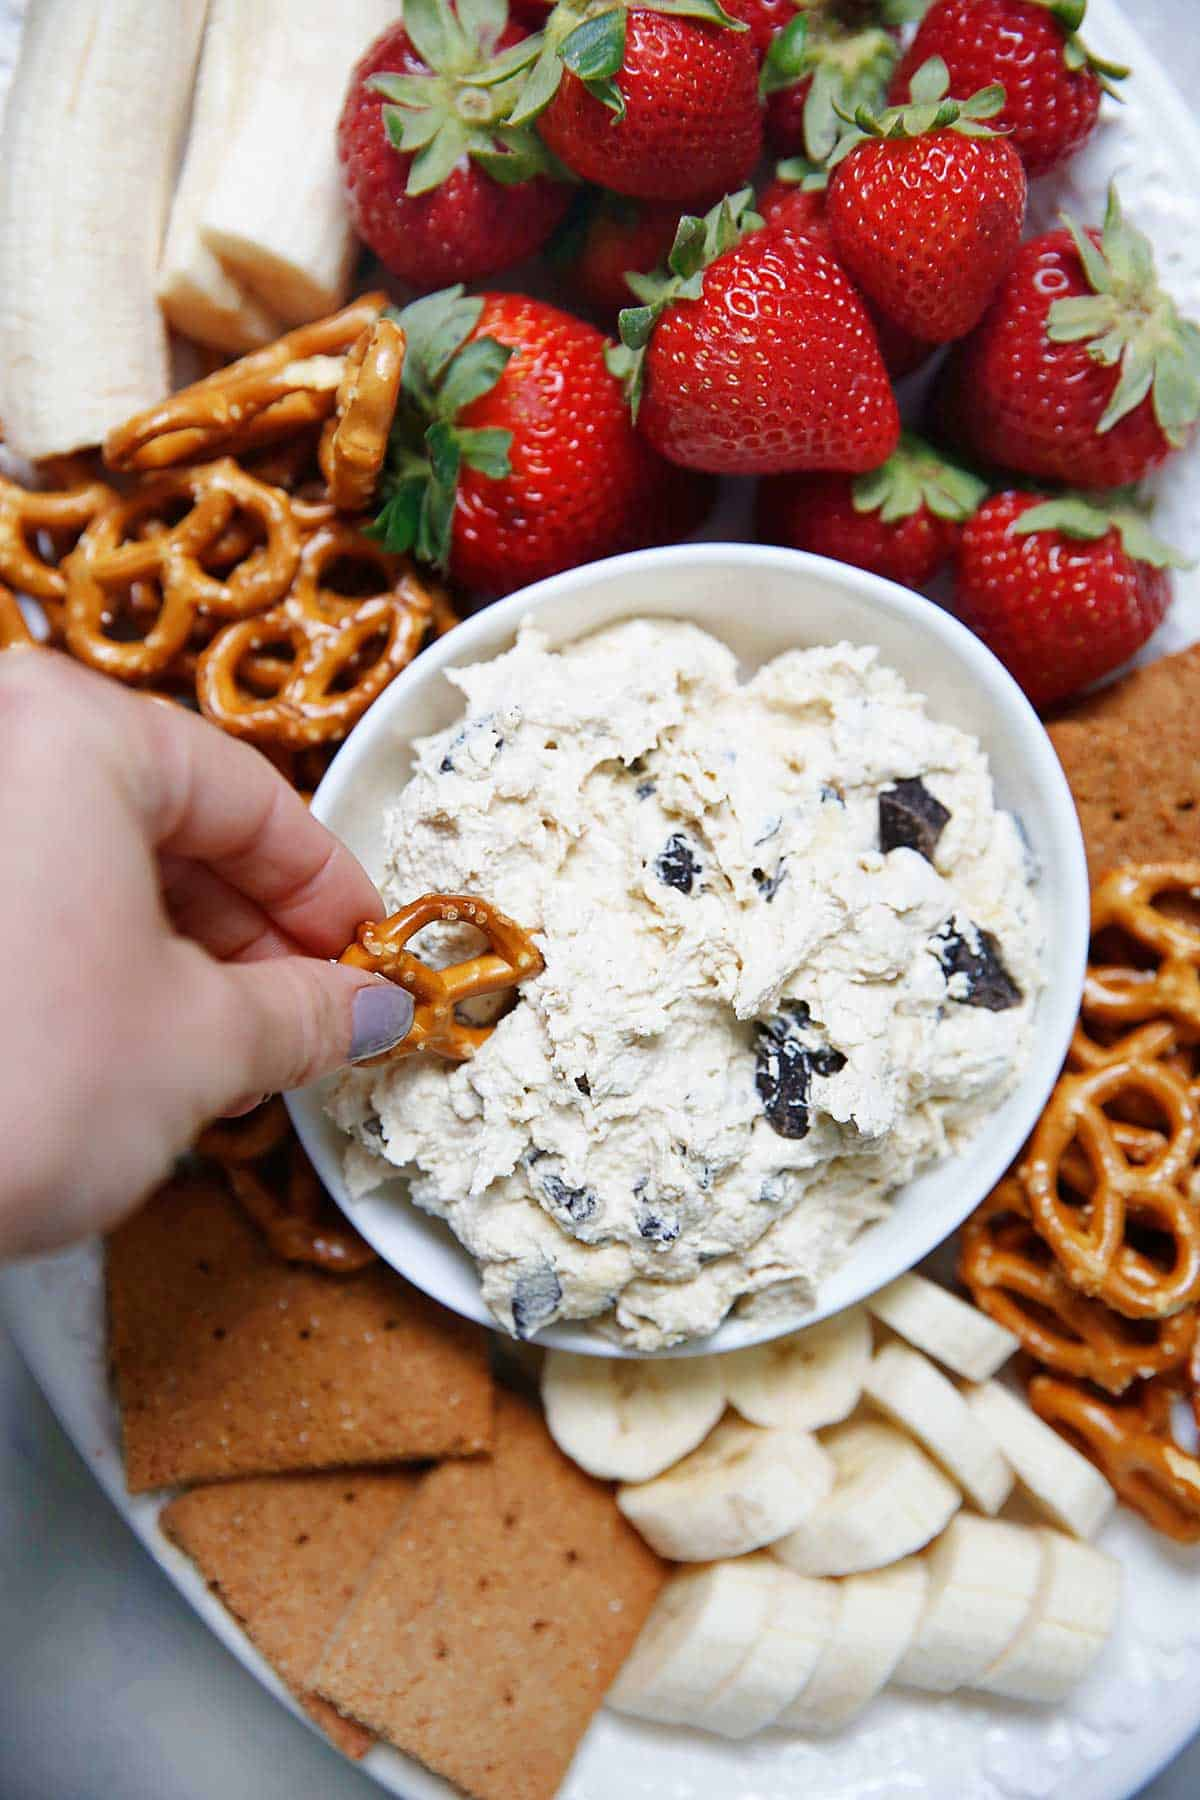 Gluten-free Edible Cookie Dough Dip | Lexi's Clean Kitchen